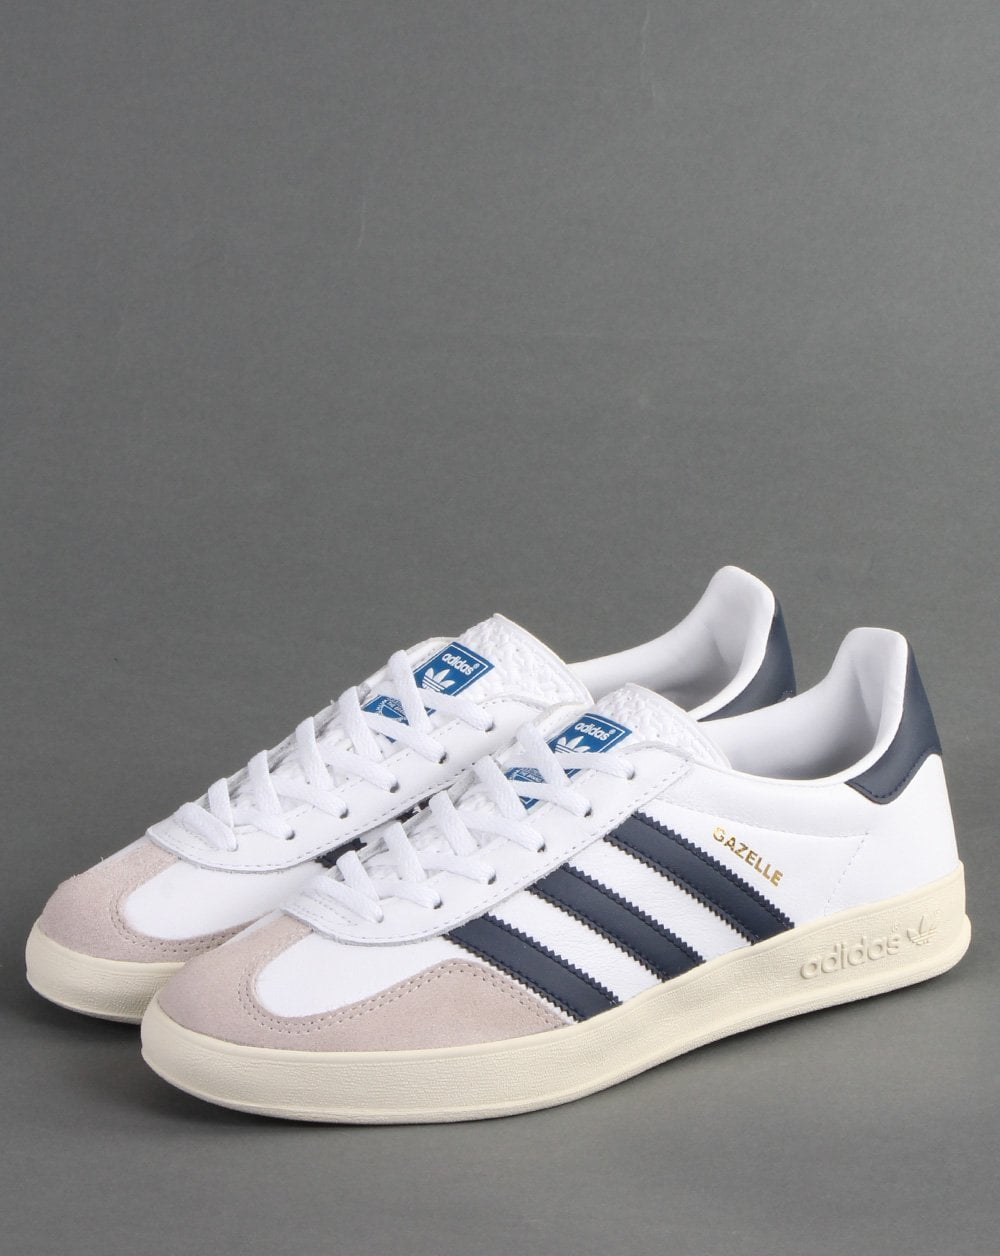 Everything You Need To Know About The adidas Gazelle Indoor ...